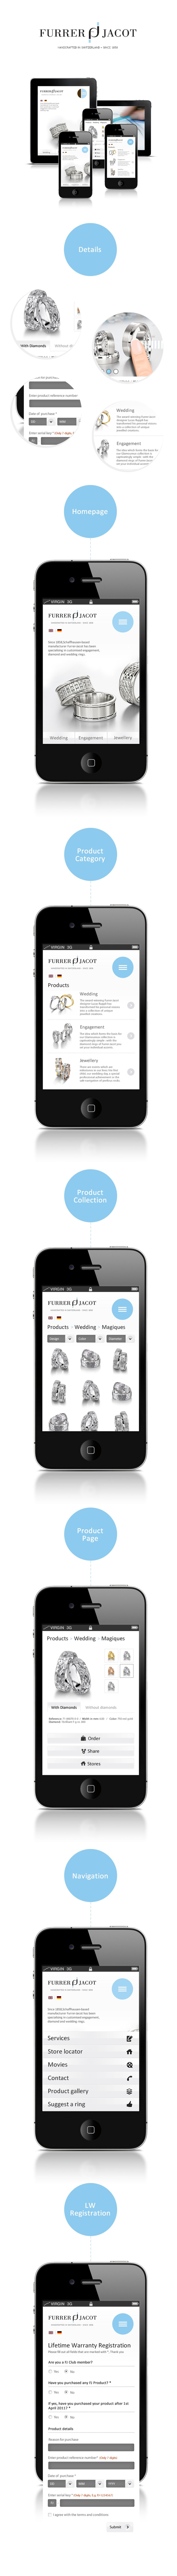 Mobile version of site for Furrer Jacot.  Since 1858,Schaffhausen-based manufacturer Furrer-Jacot has been specialising in customised engagement, diamond and wedding rings